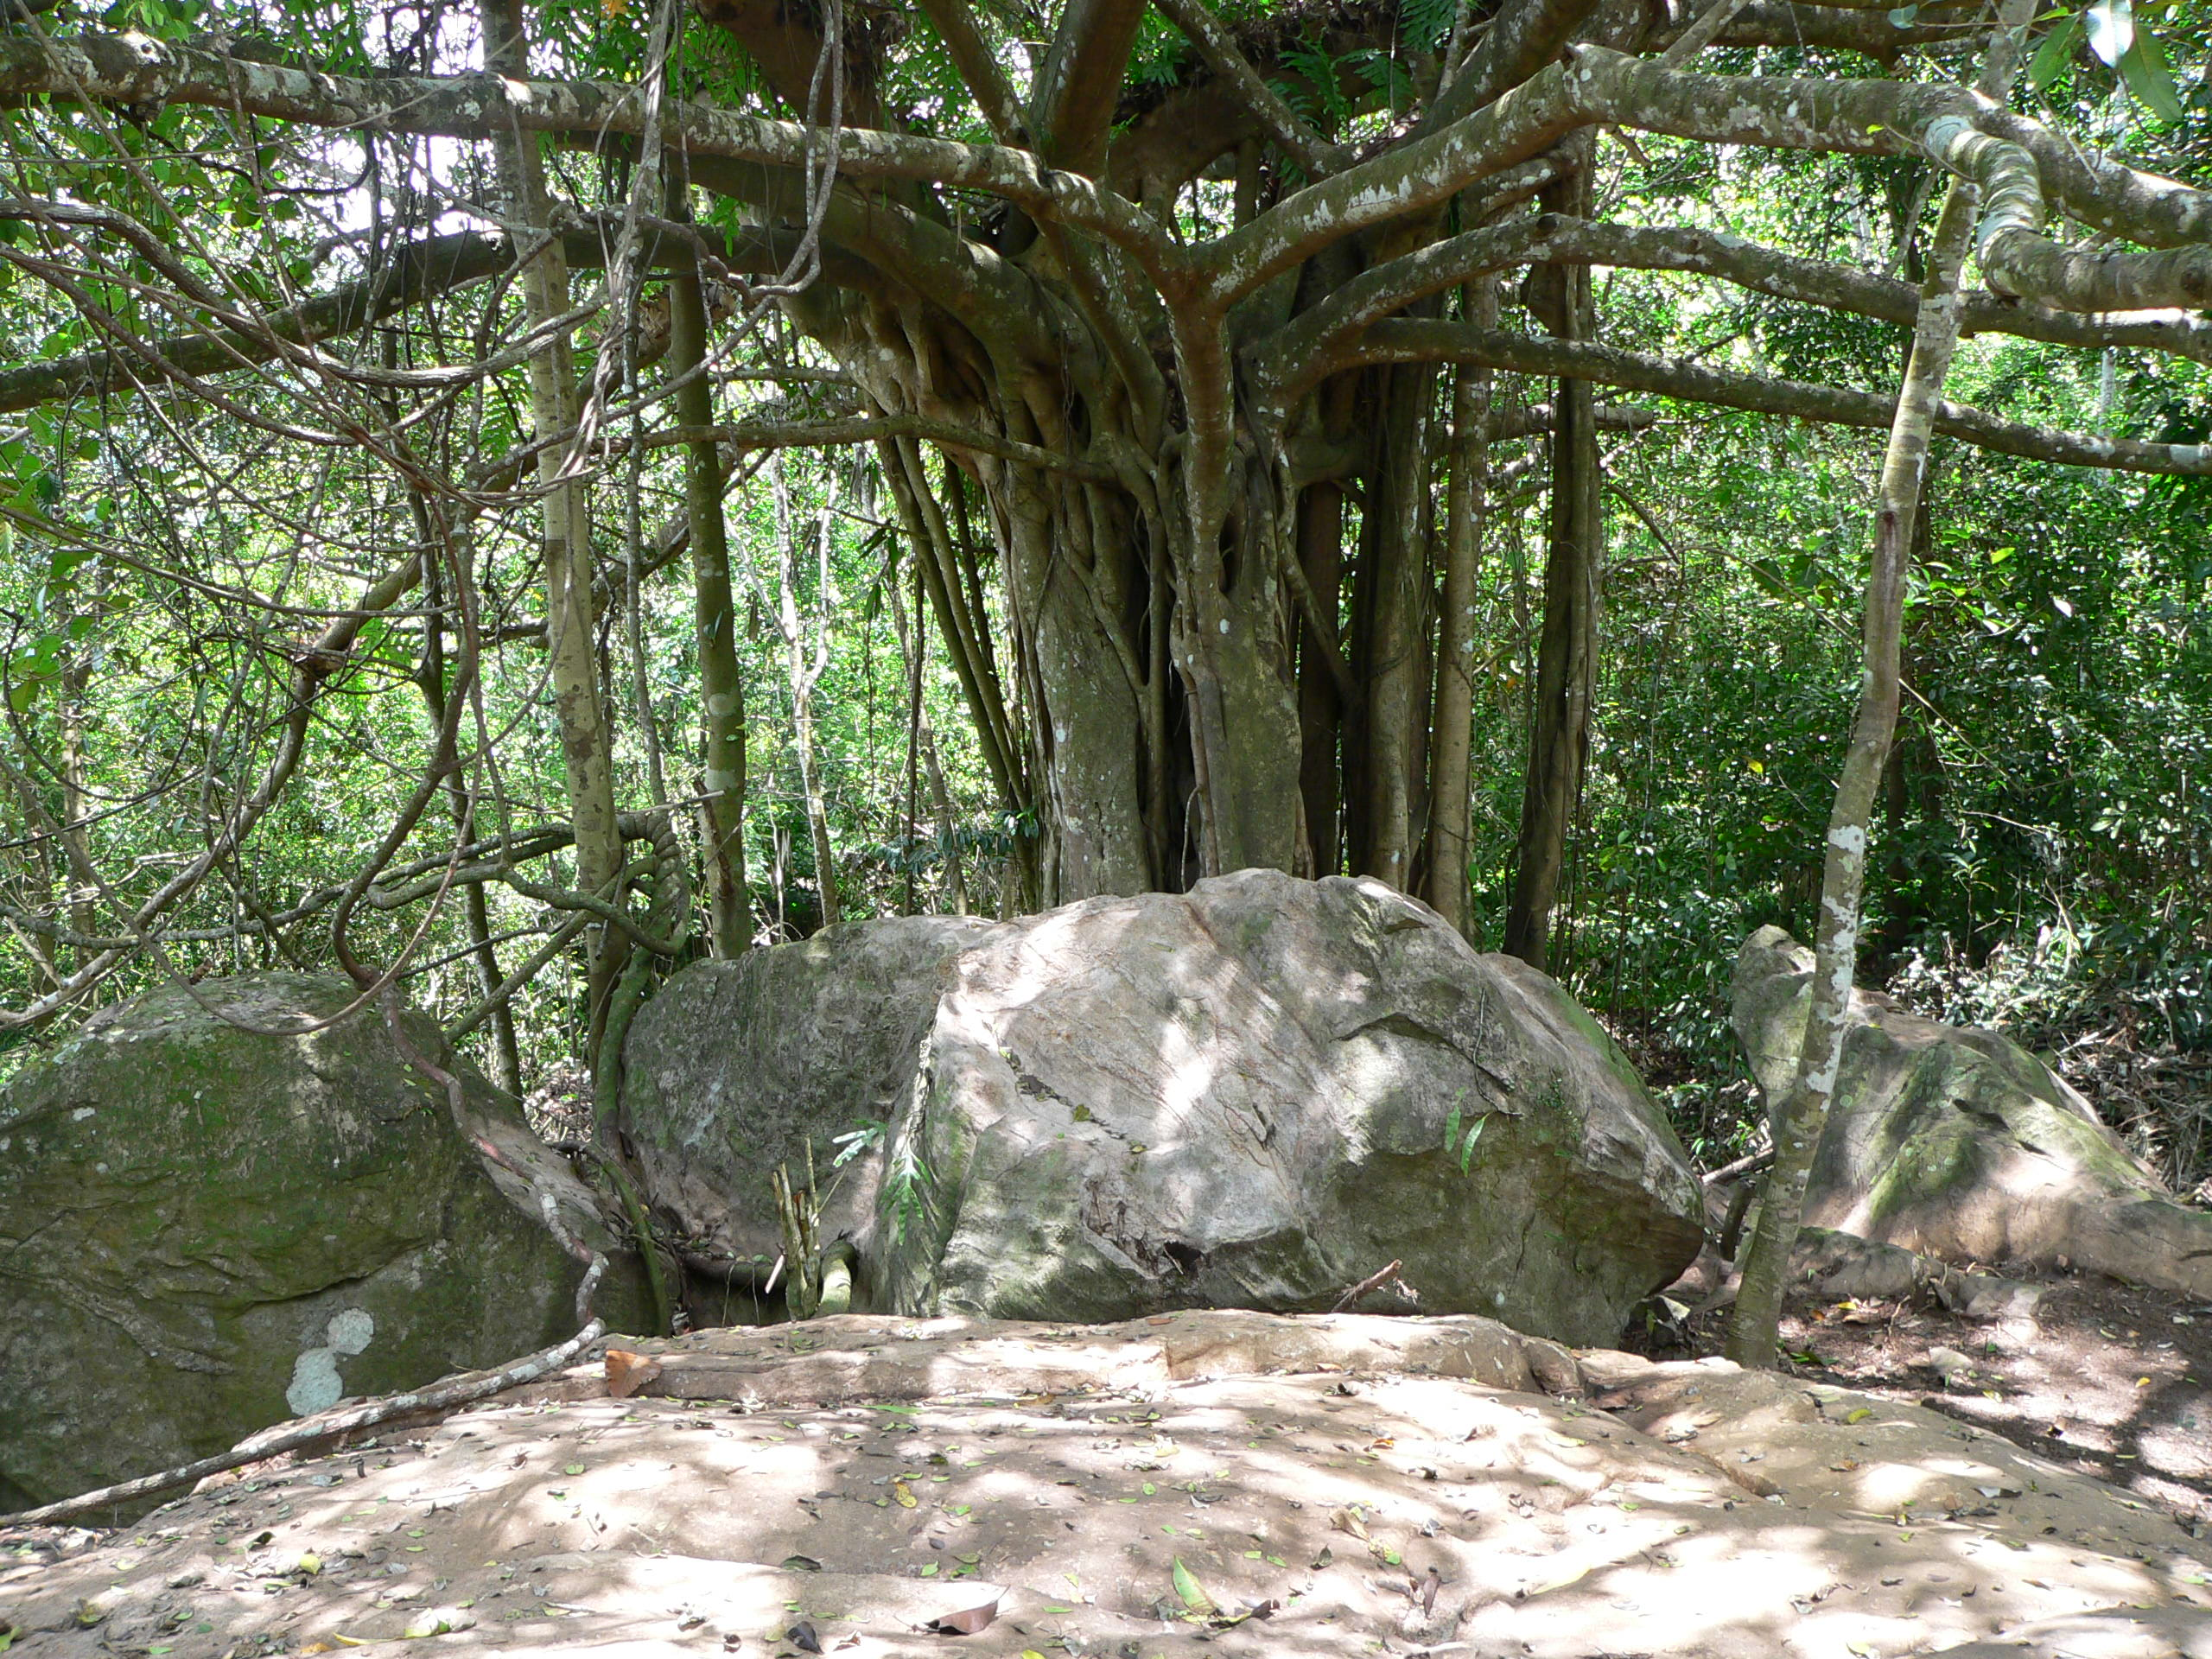 The sacred Banyan Tree